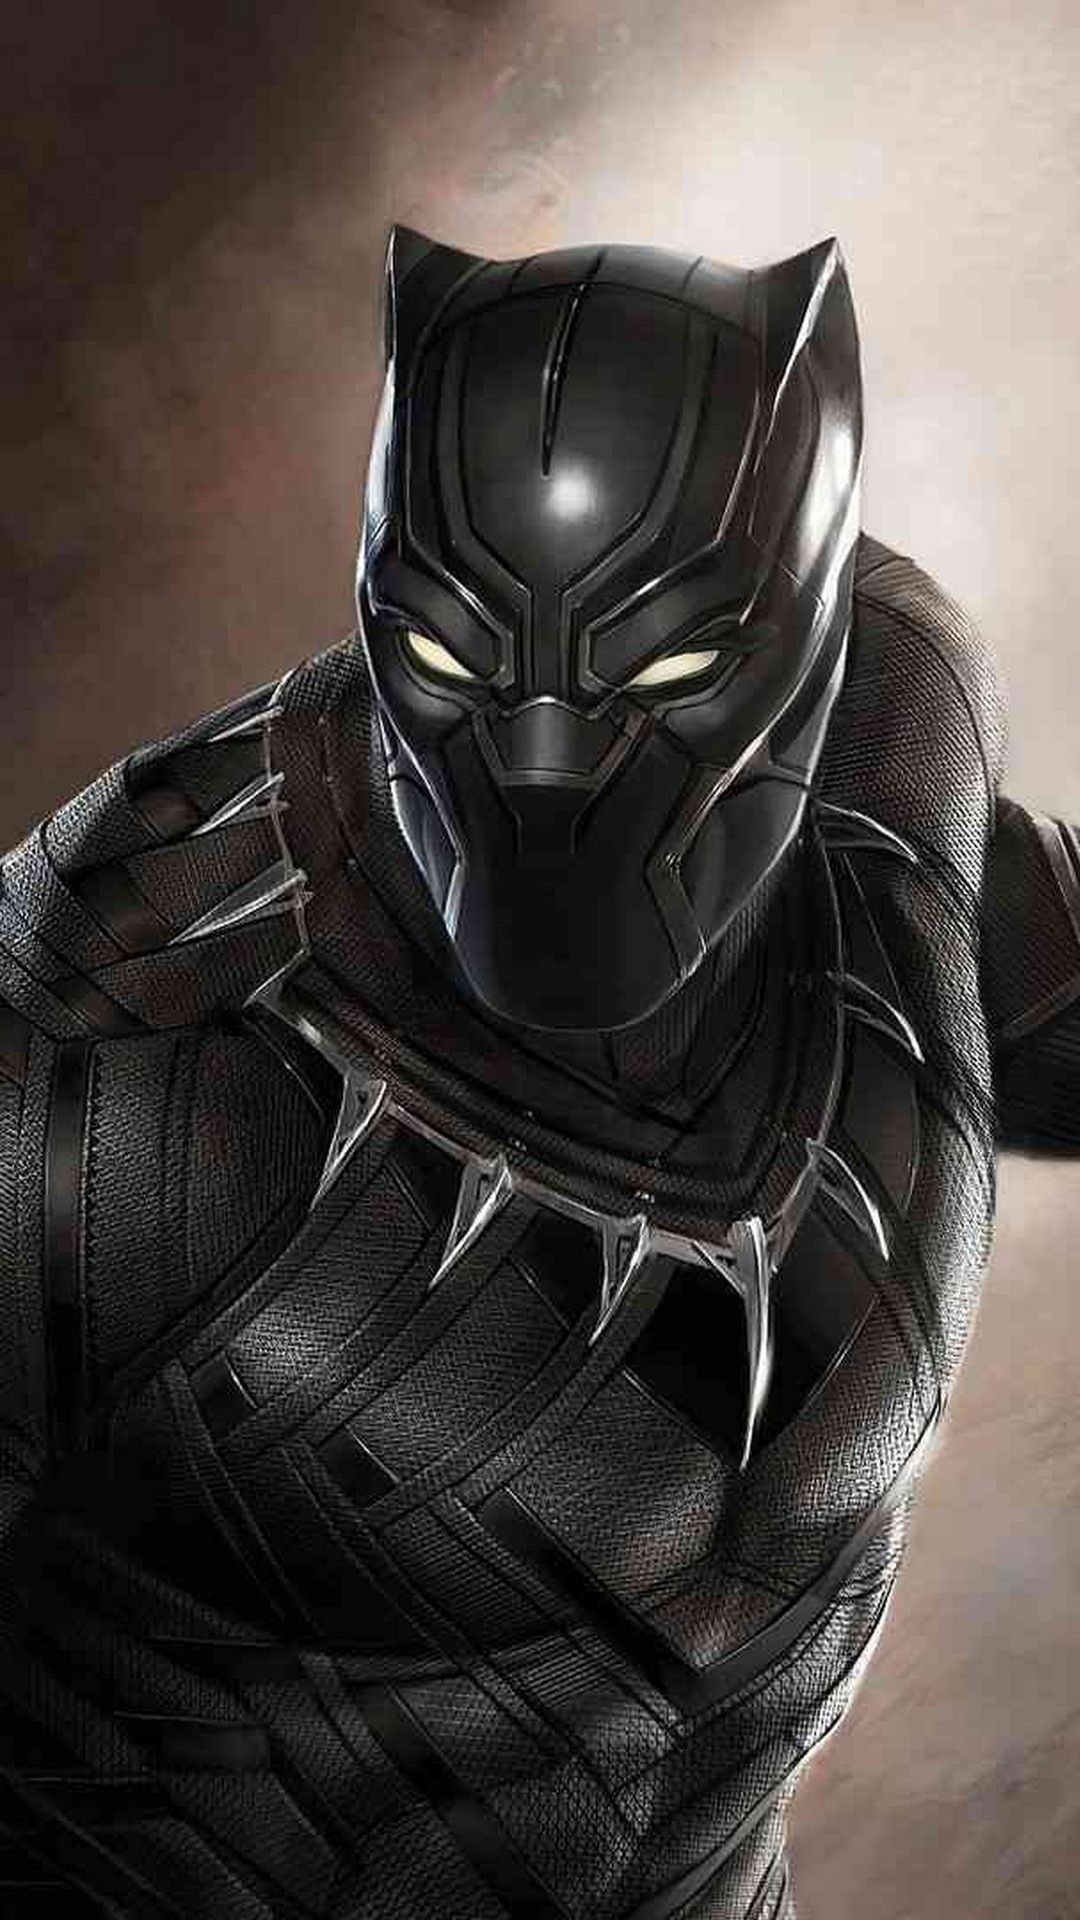 Black Panther Avengers Infinity War iPhone Wallpaper